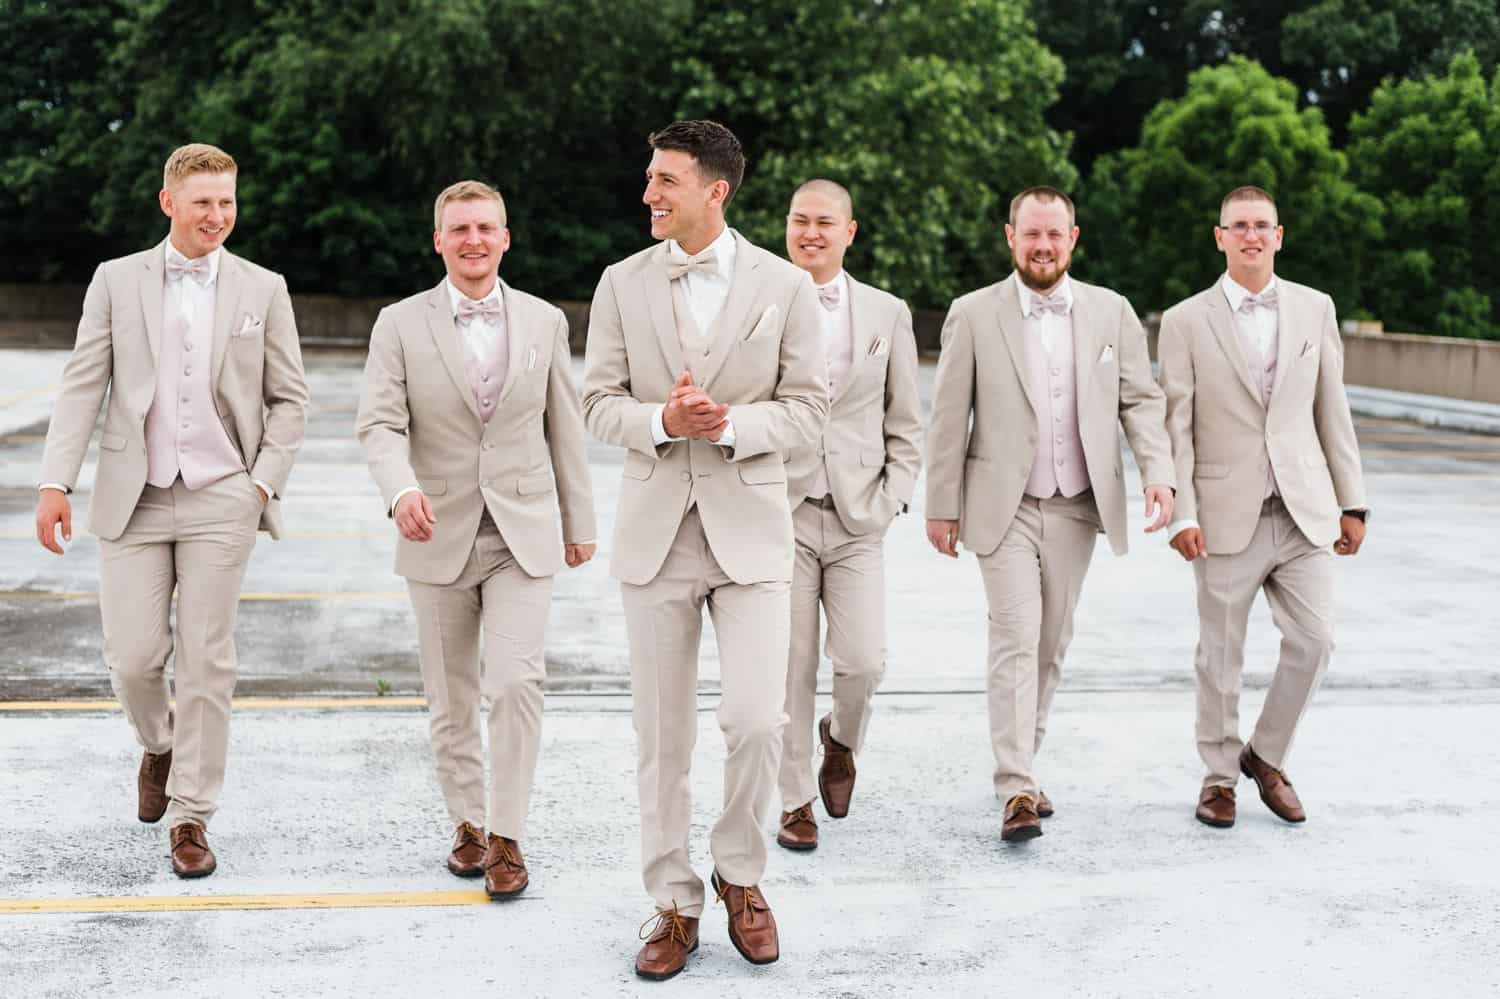 Groomsmen in tan suits walk casually across a tree-lined parking lot.